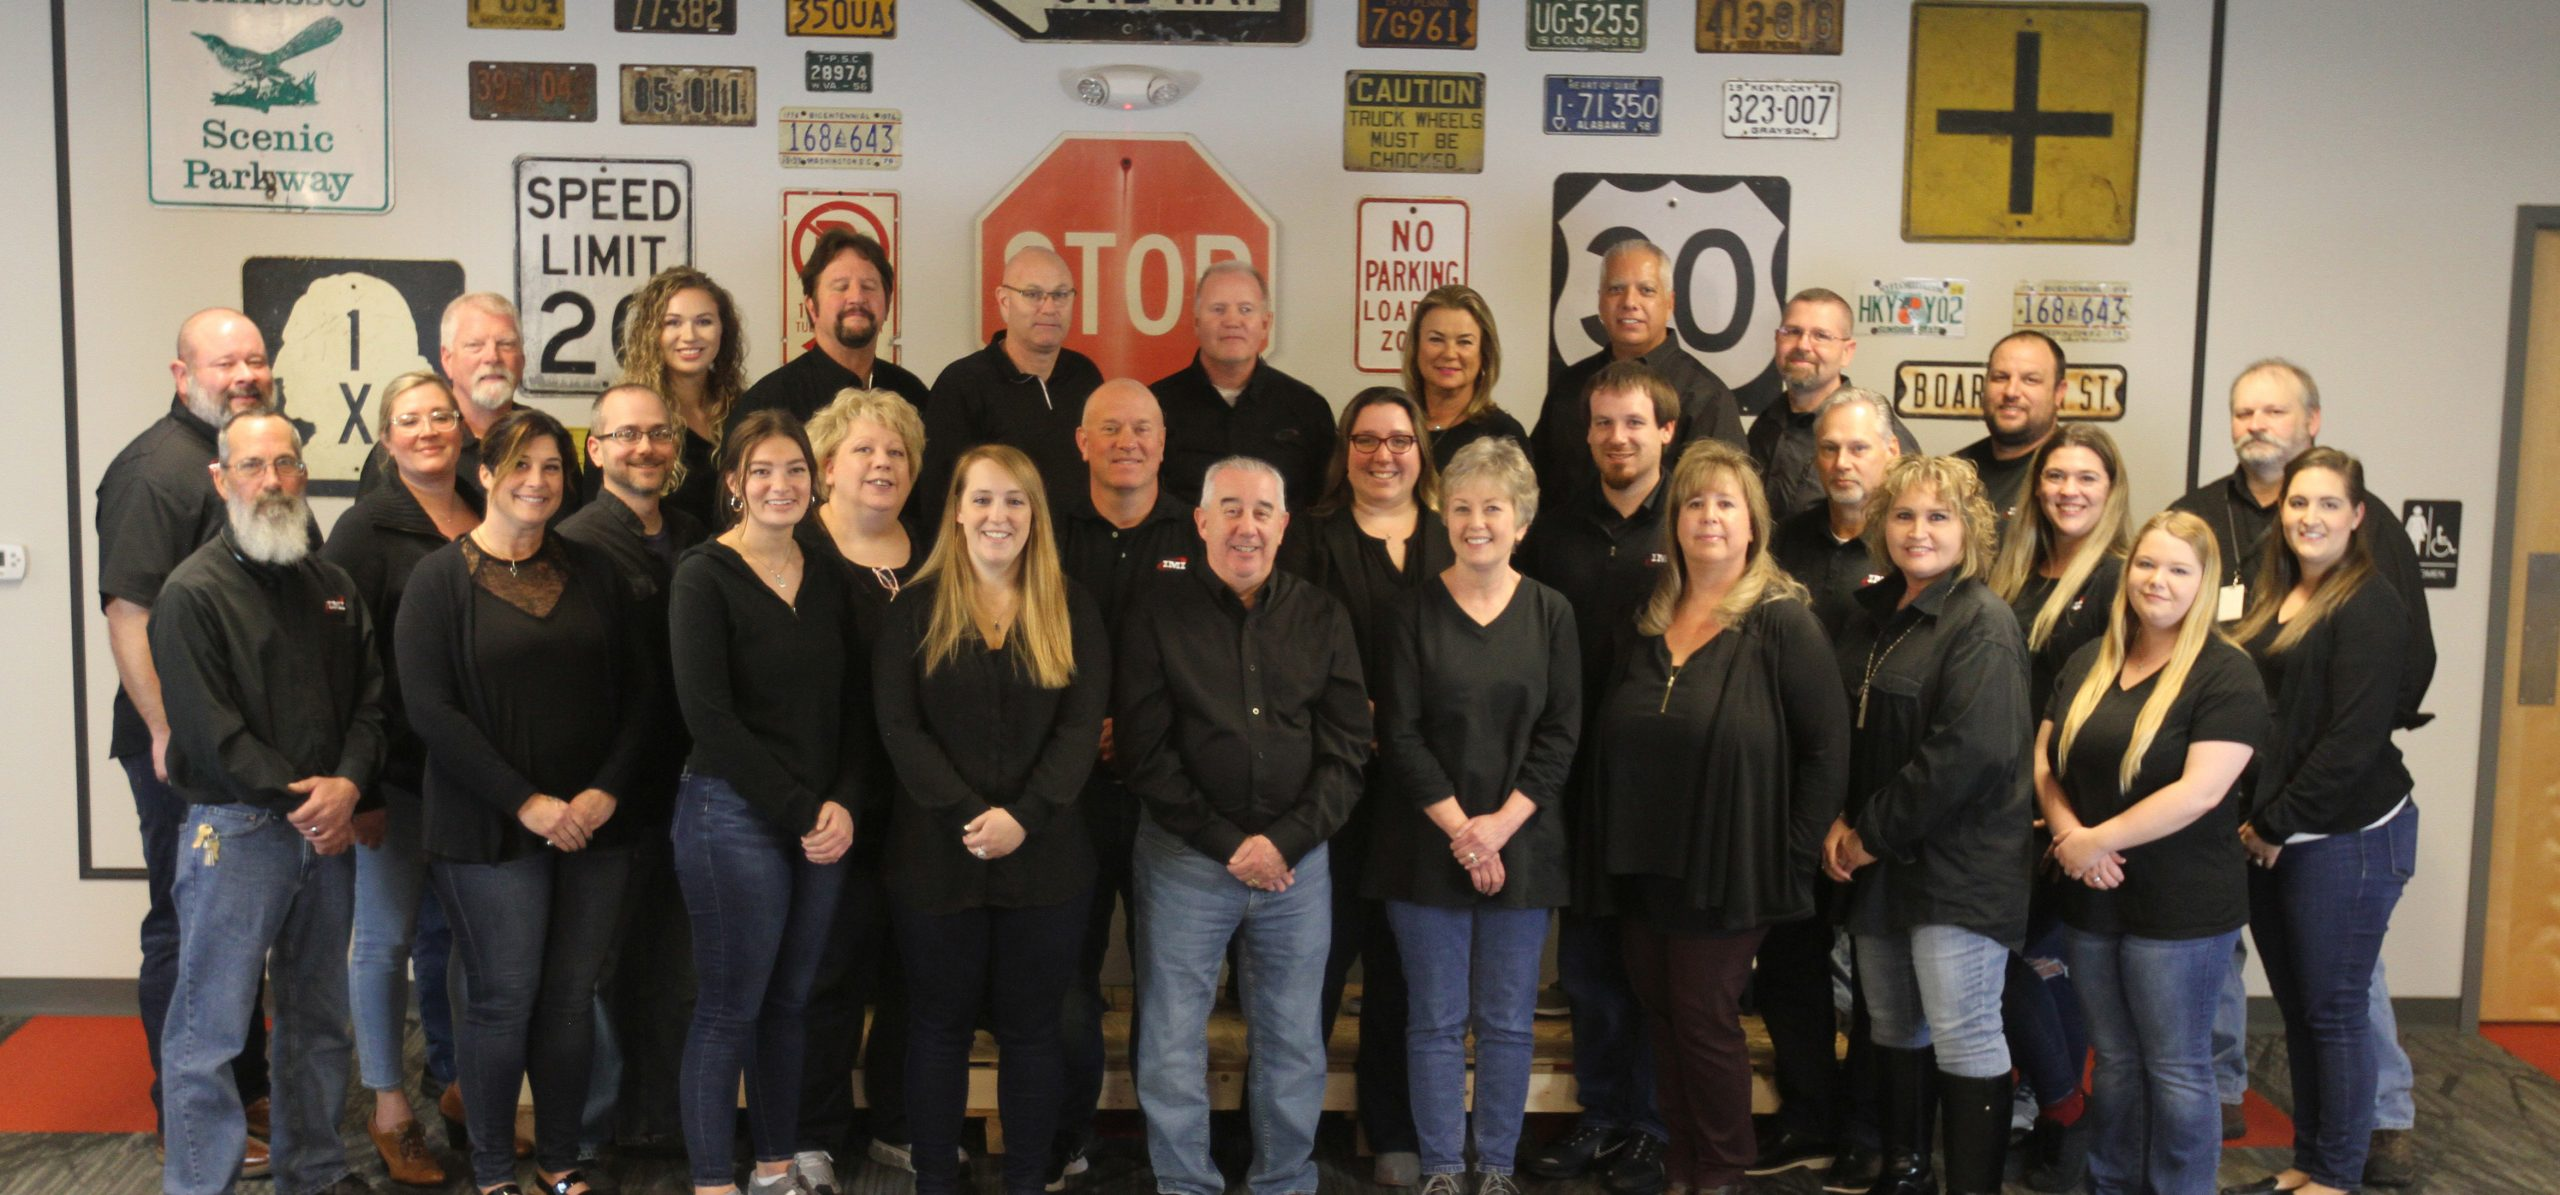 A team picture of everyone in the same black shirt and standing in front of a wall with different road signs